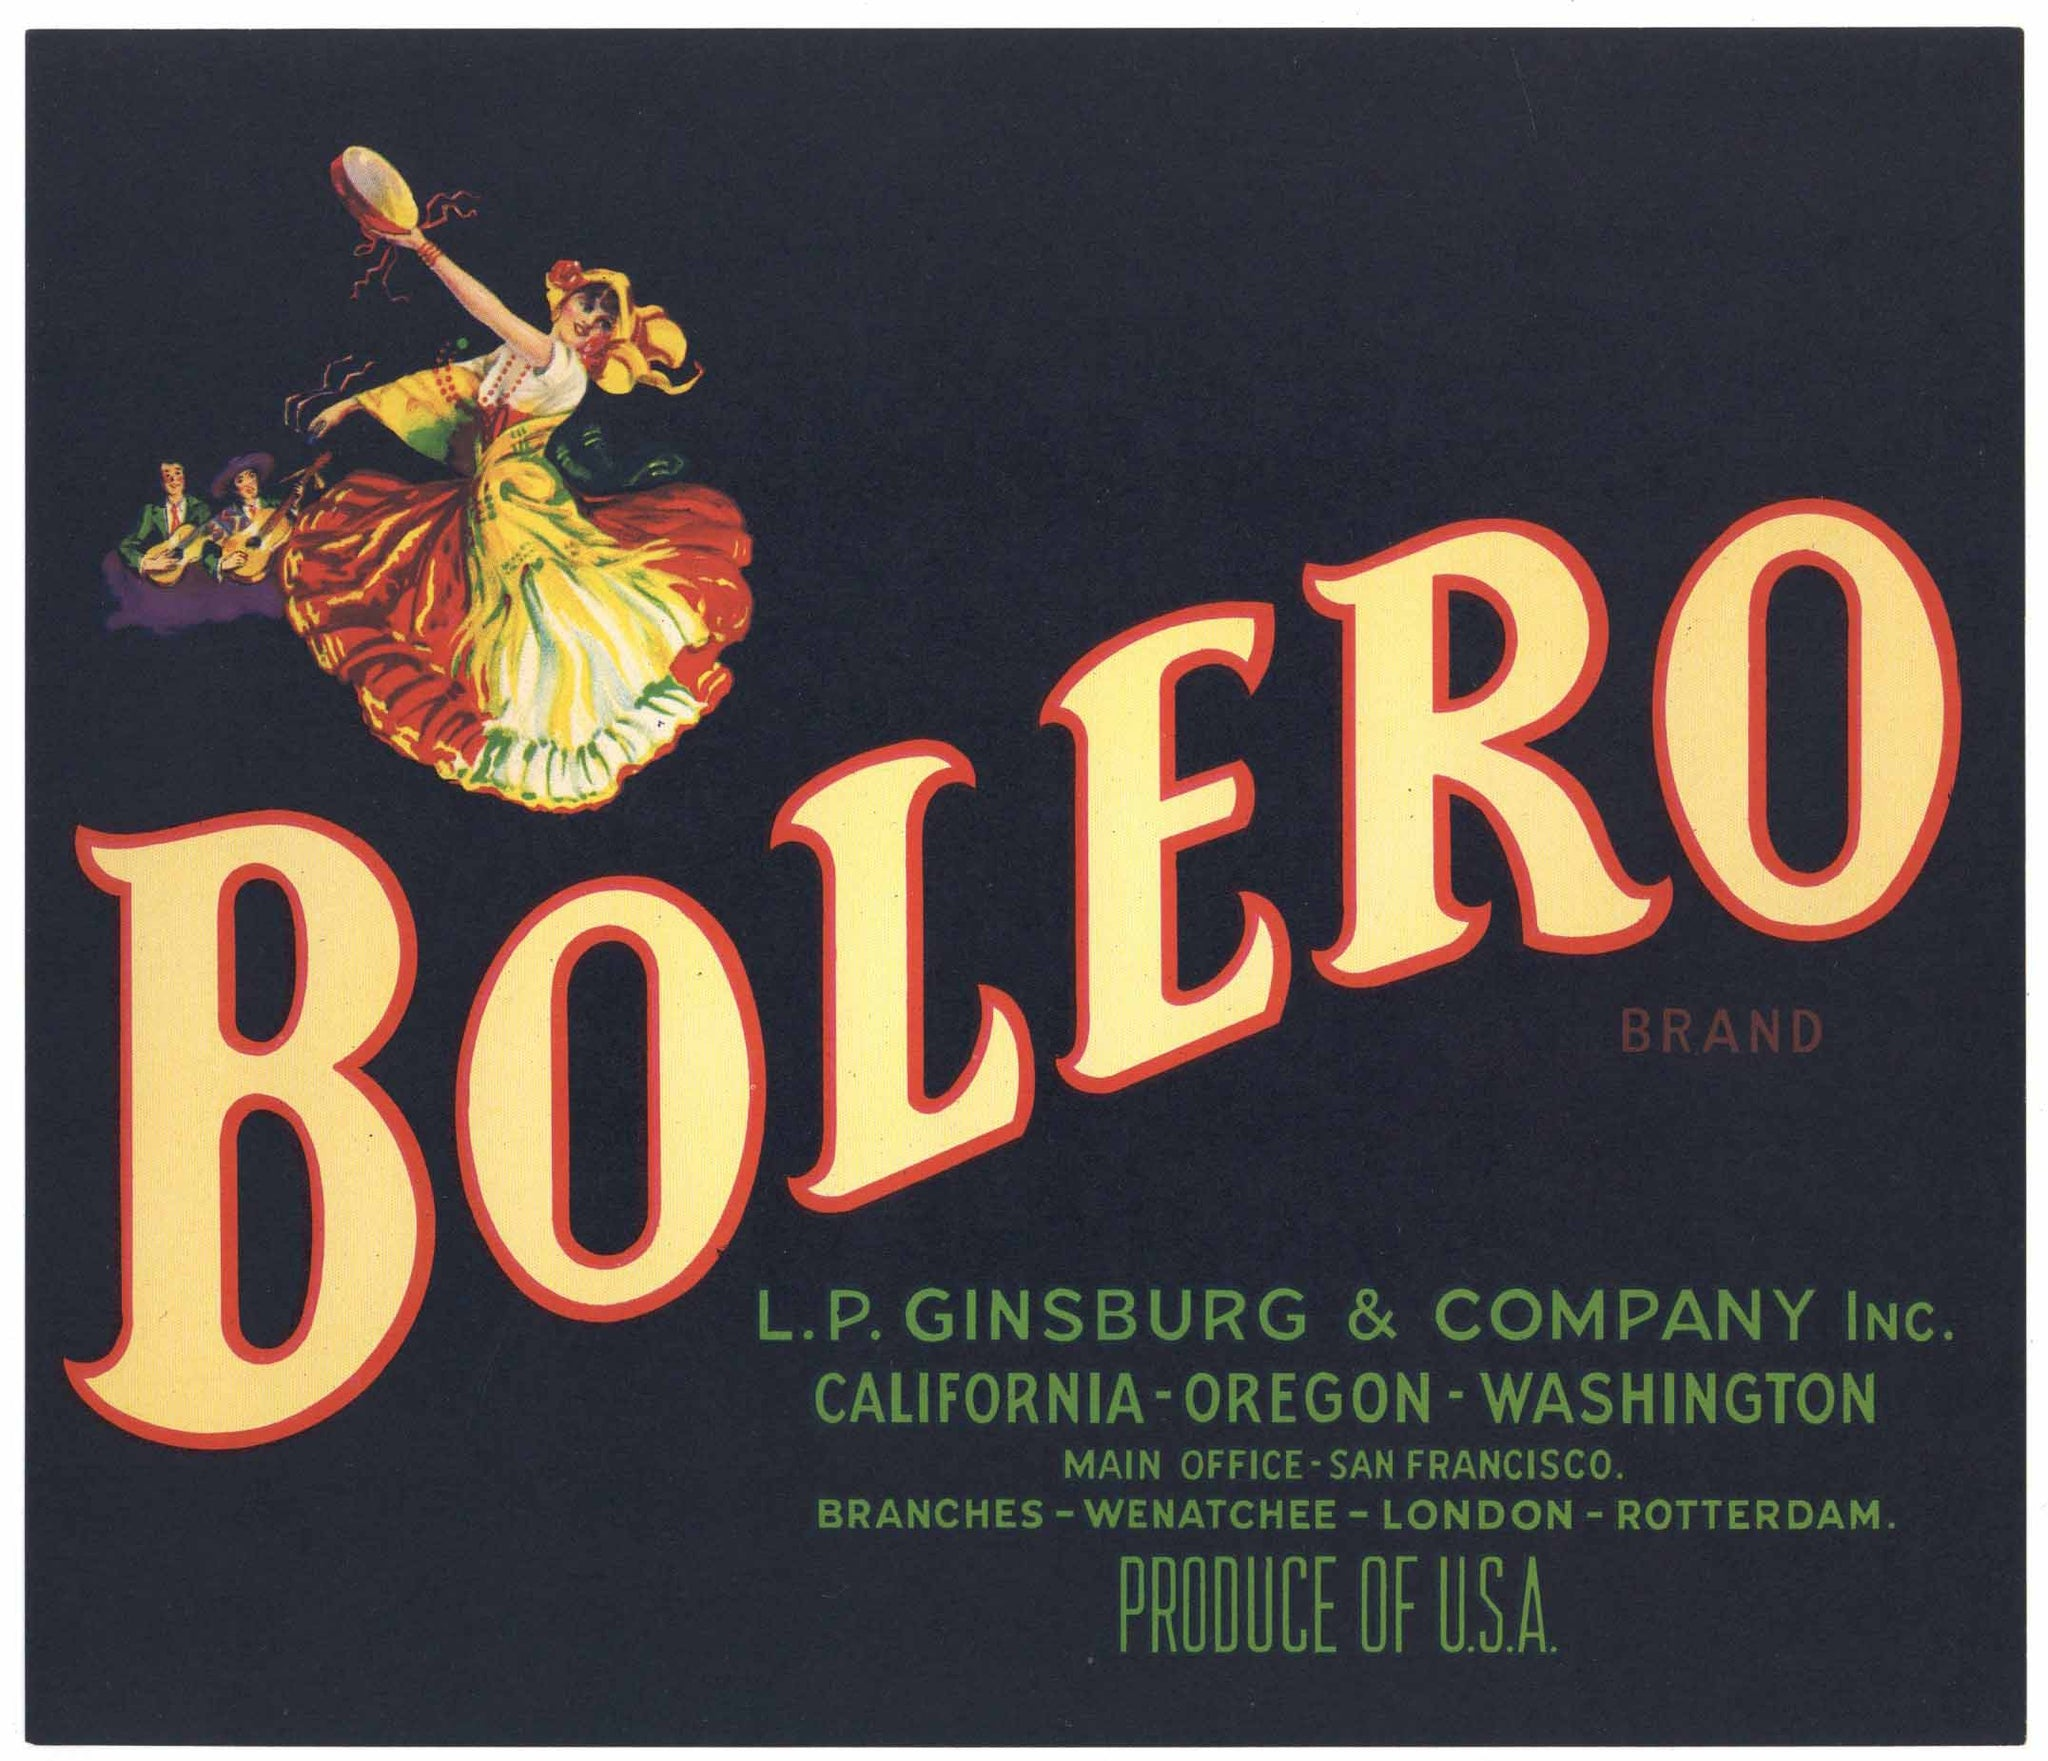 Bolero Brand Vintage Apple Crate Label